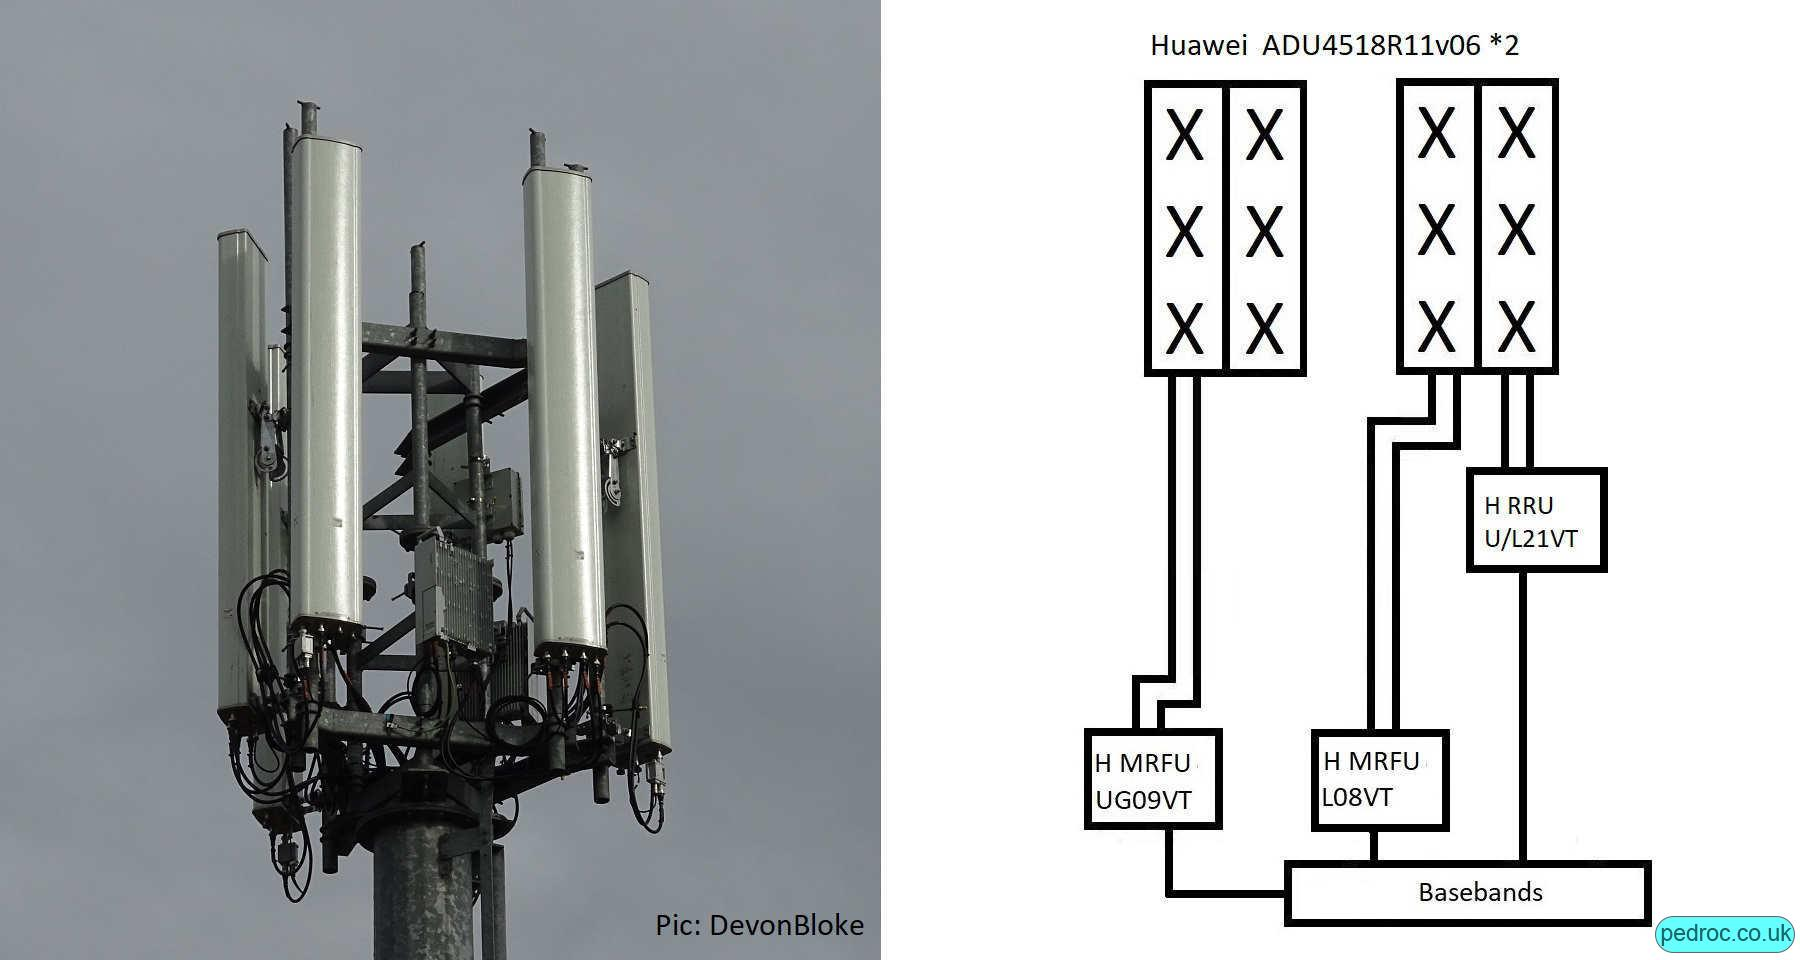 Vodafone Huawei medium-low site with Huawei ADU4518R11v06 antennas and RRUs.